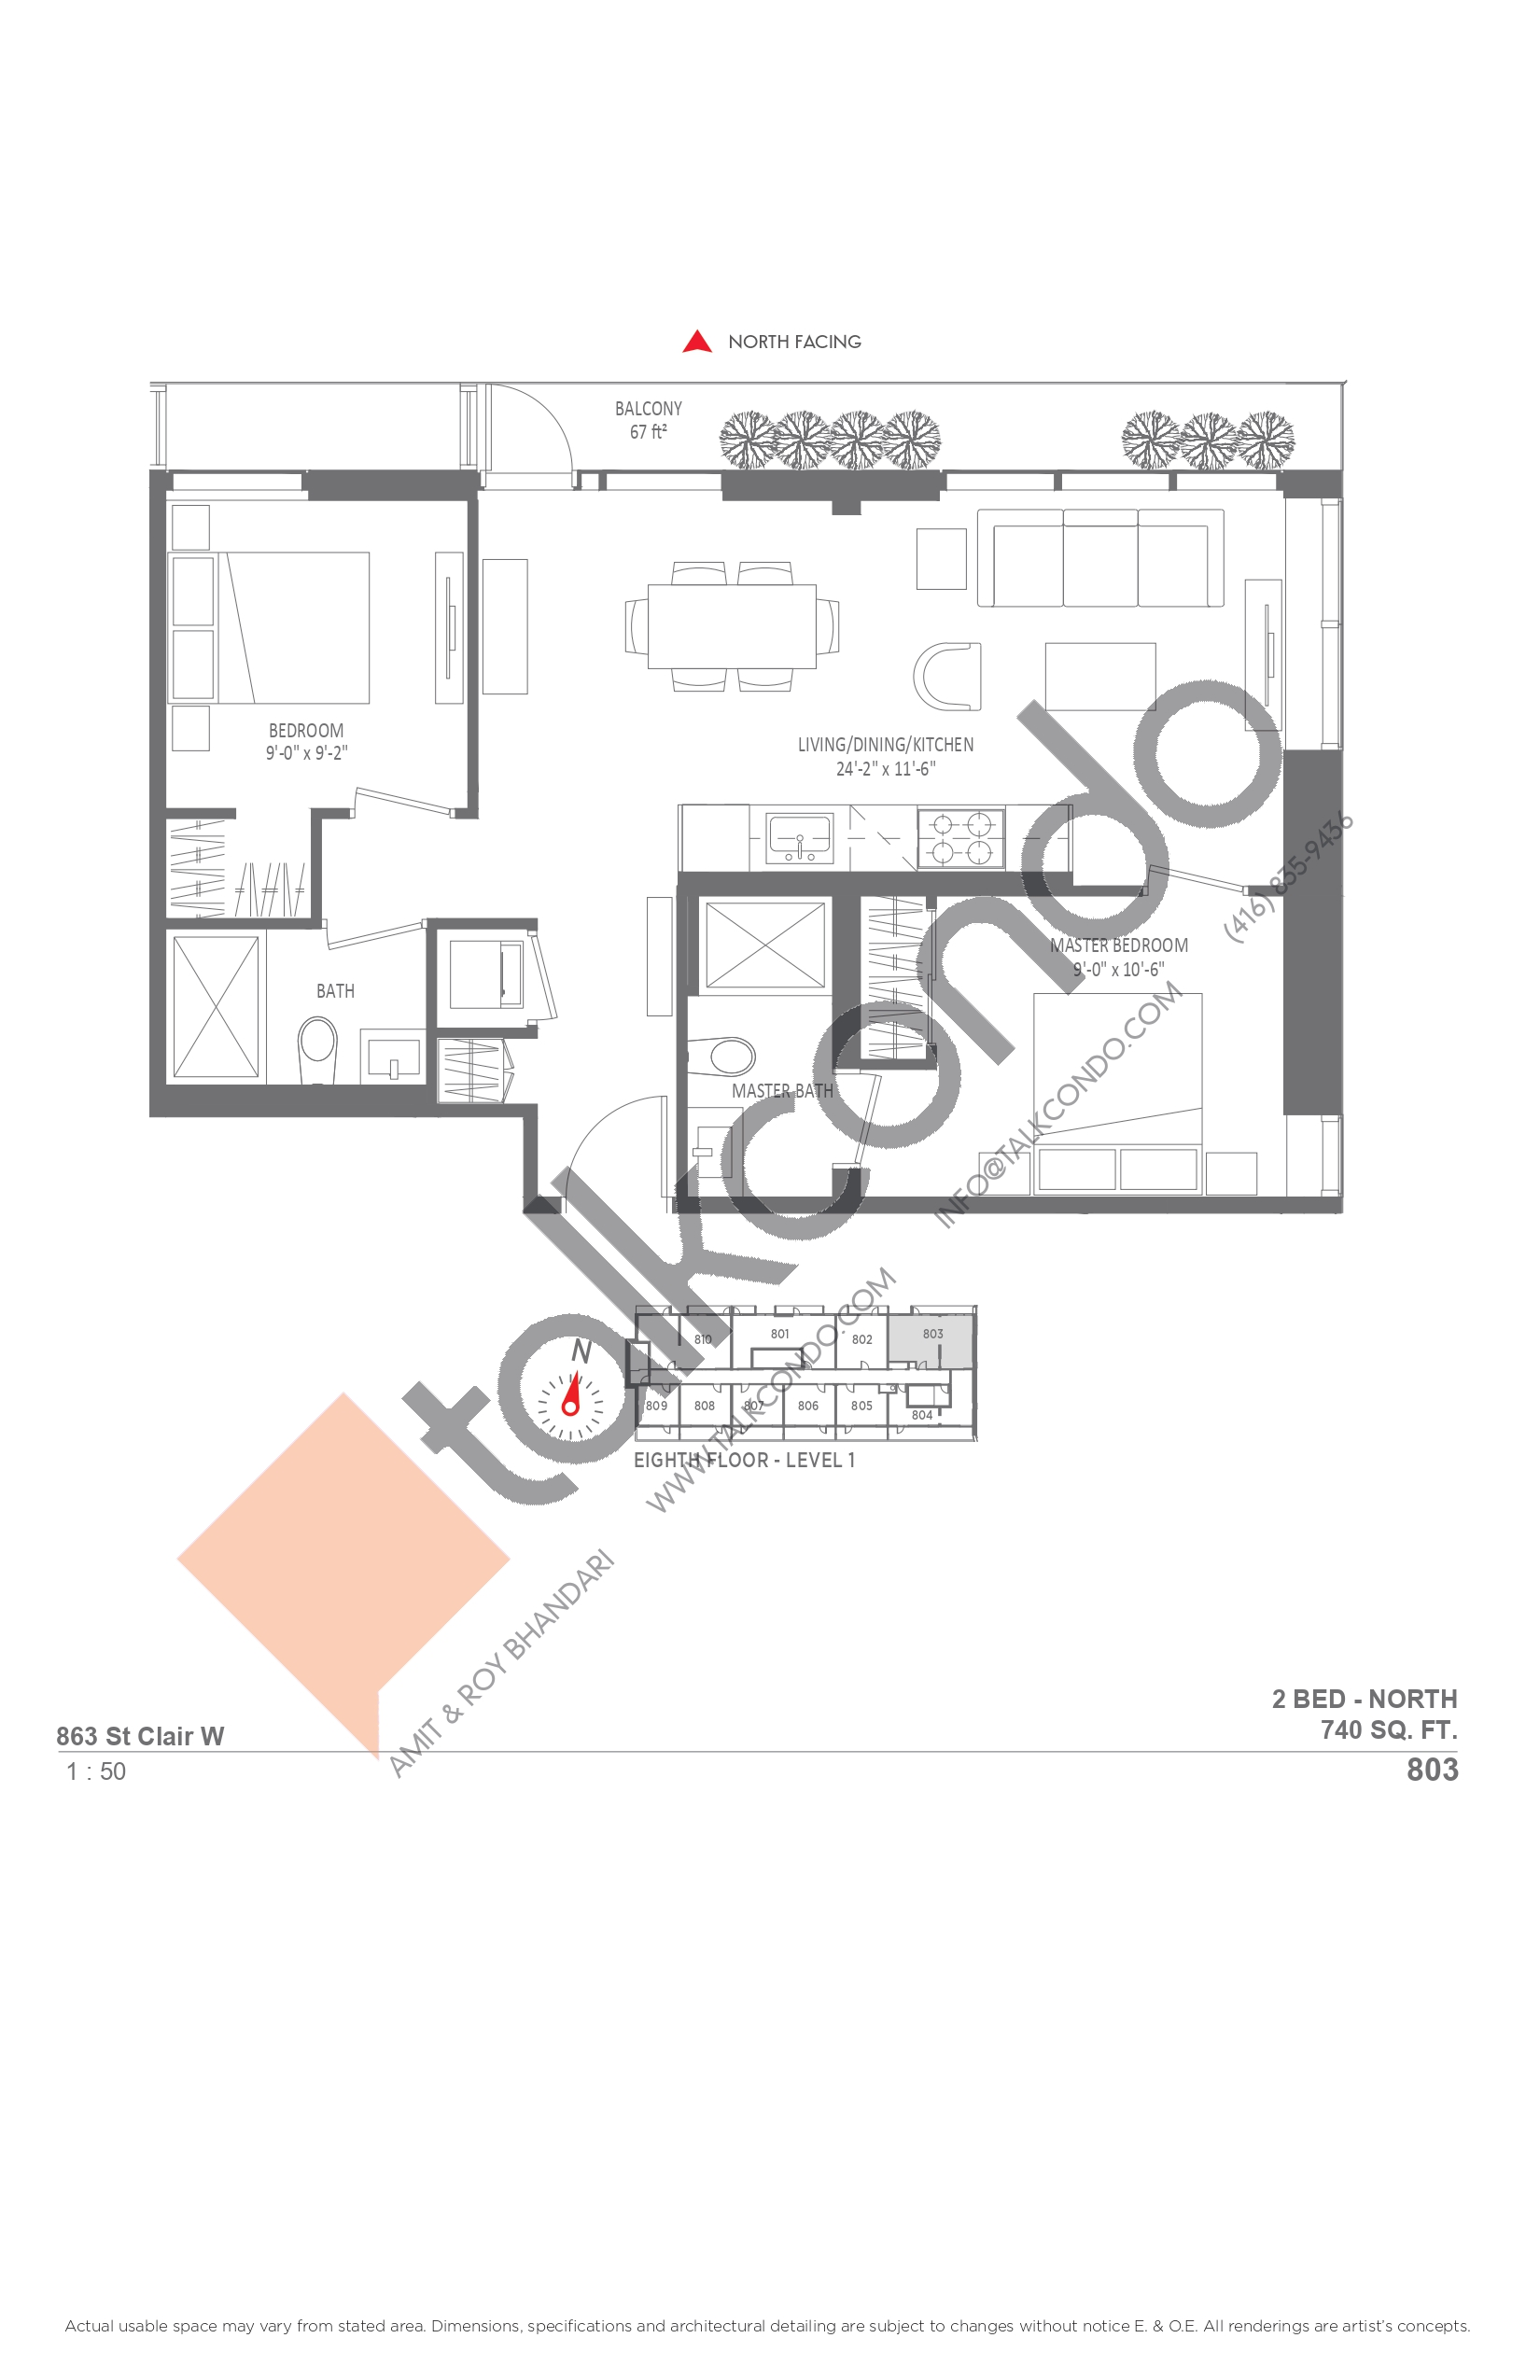 803 Floor Plan at Monza Condos - 740 sq.ft